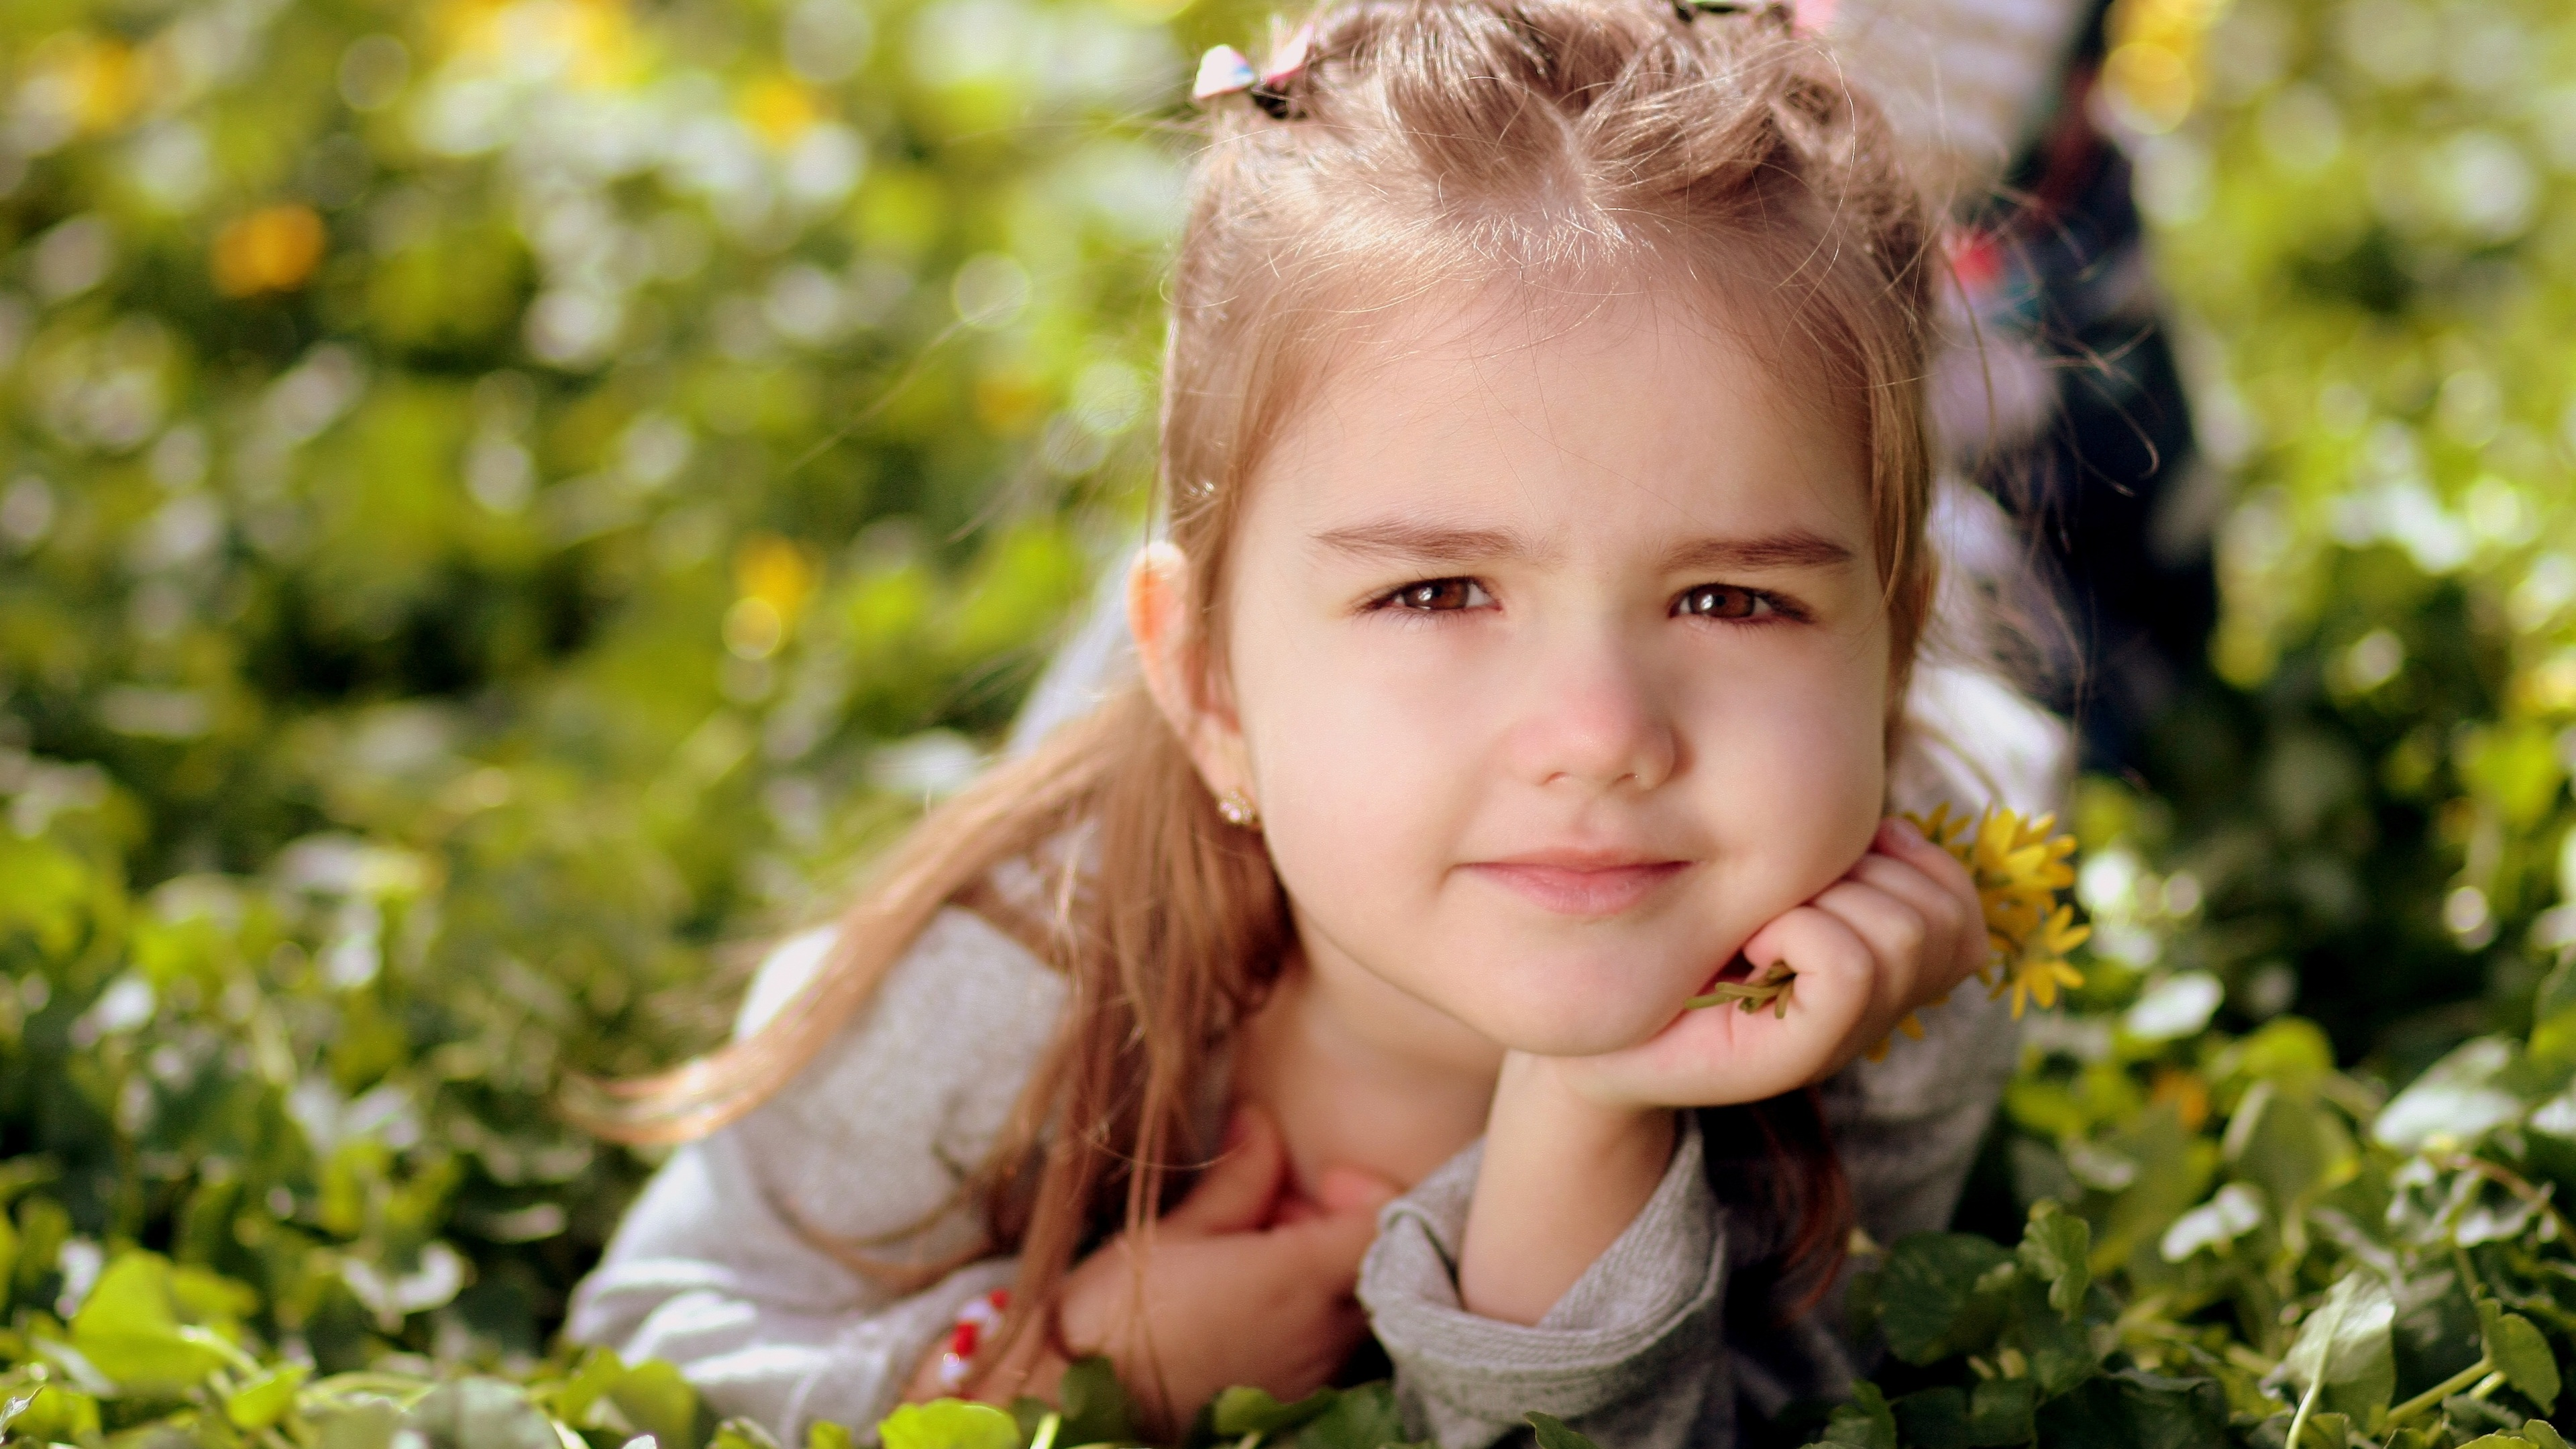 3840x2160 cute kid girl toddler 4k hd 4k wallpapers, images